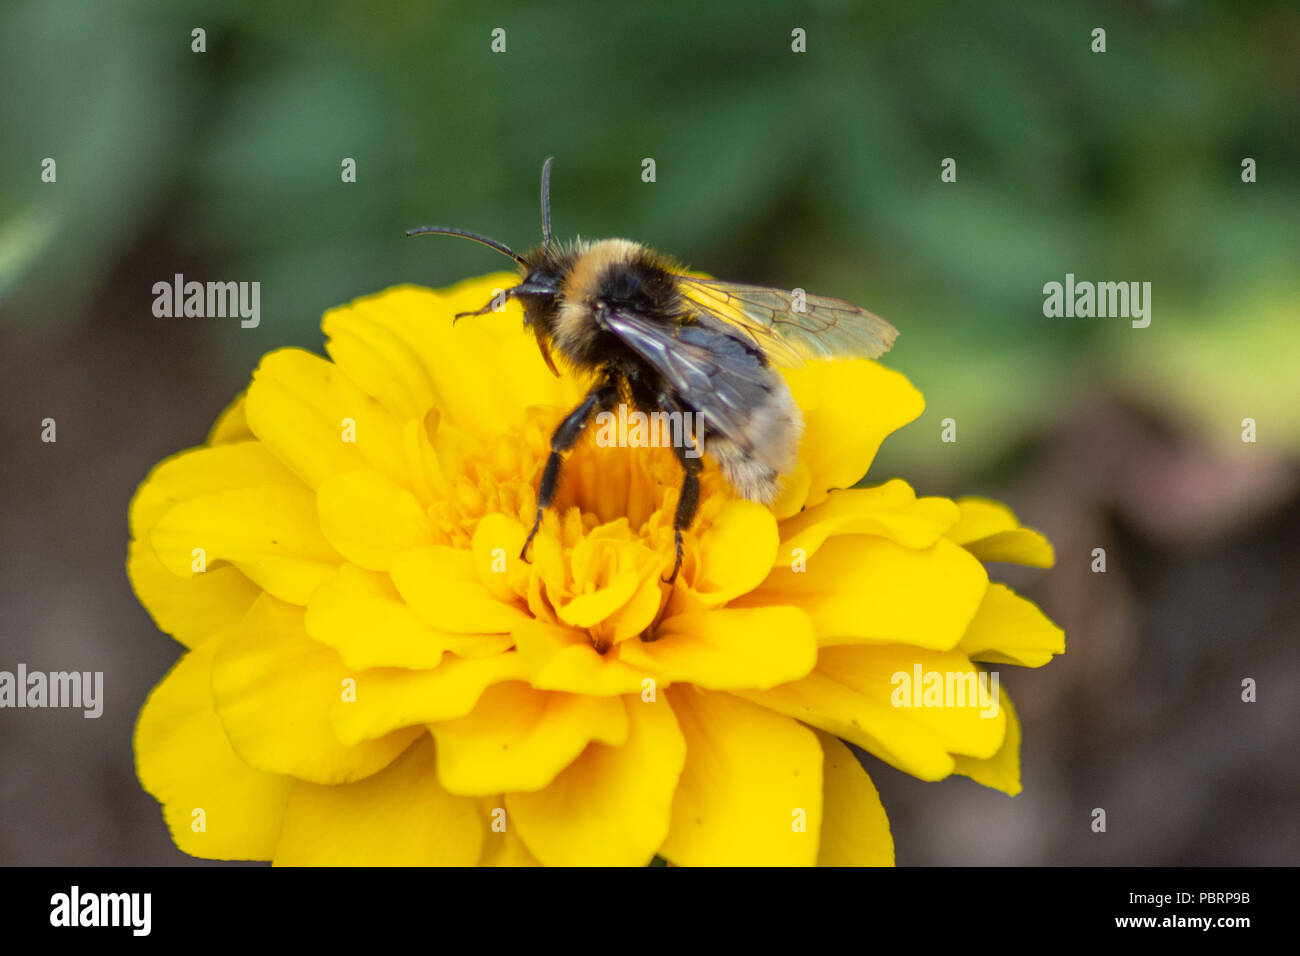 Gypsy's cuckoo bumblebee  Bombus bohemicus preparing to take off from a yellow marigold flower in Trowbridge Town park - Stock Image